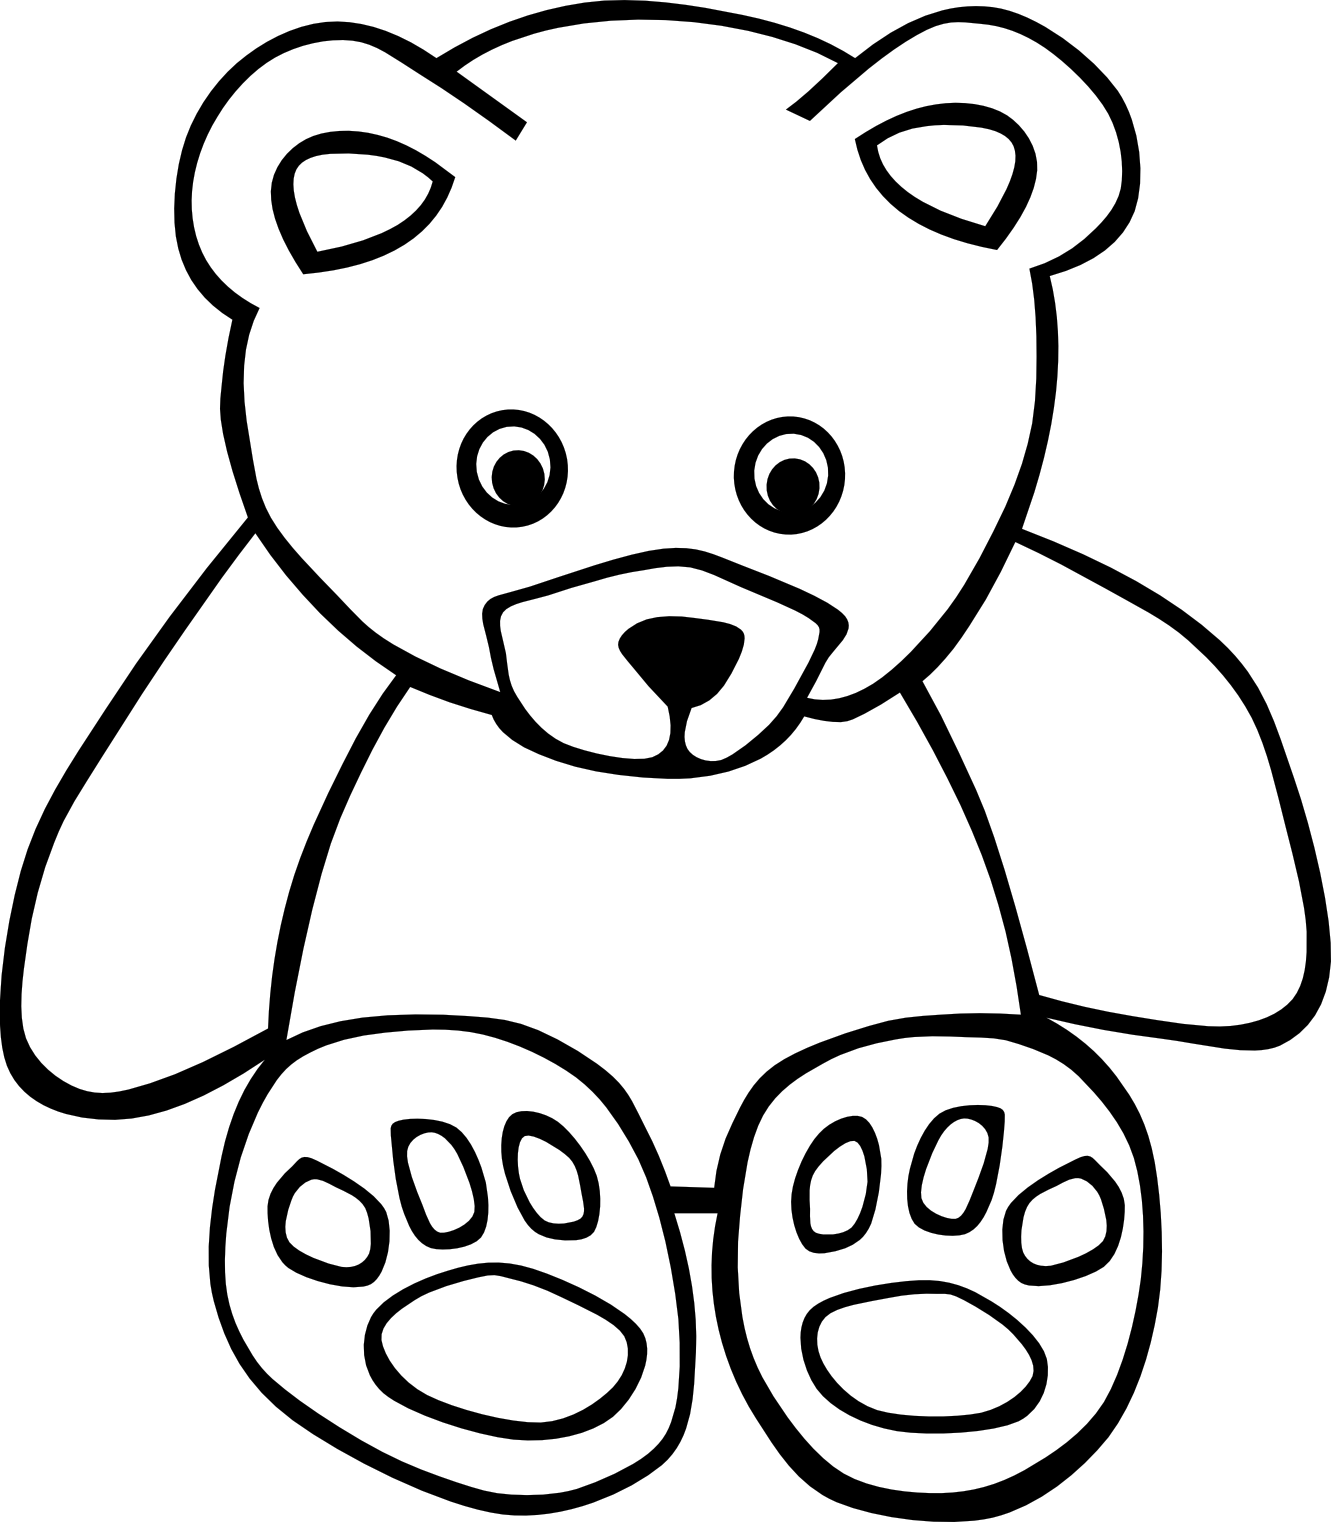 Free Black And White Animal Clipart, Download Free Clip Art.